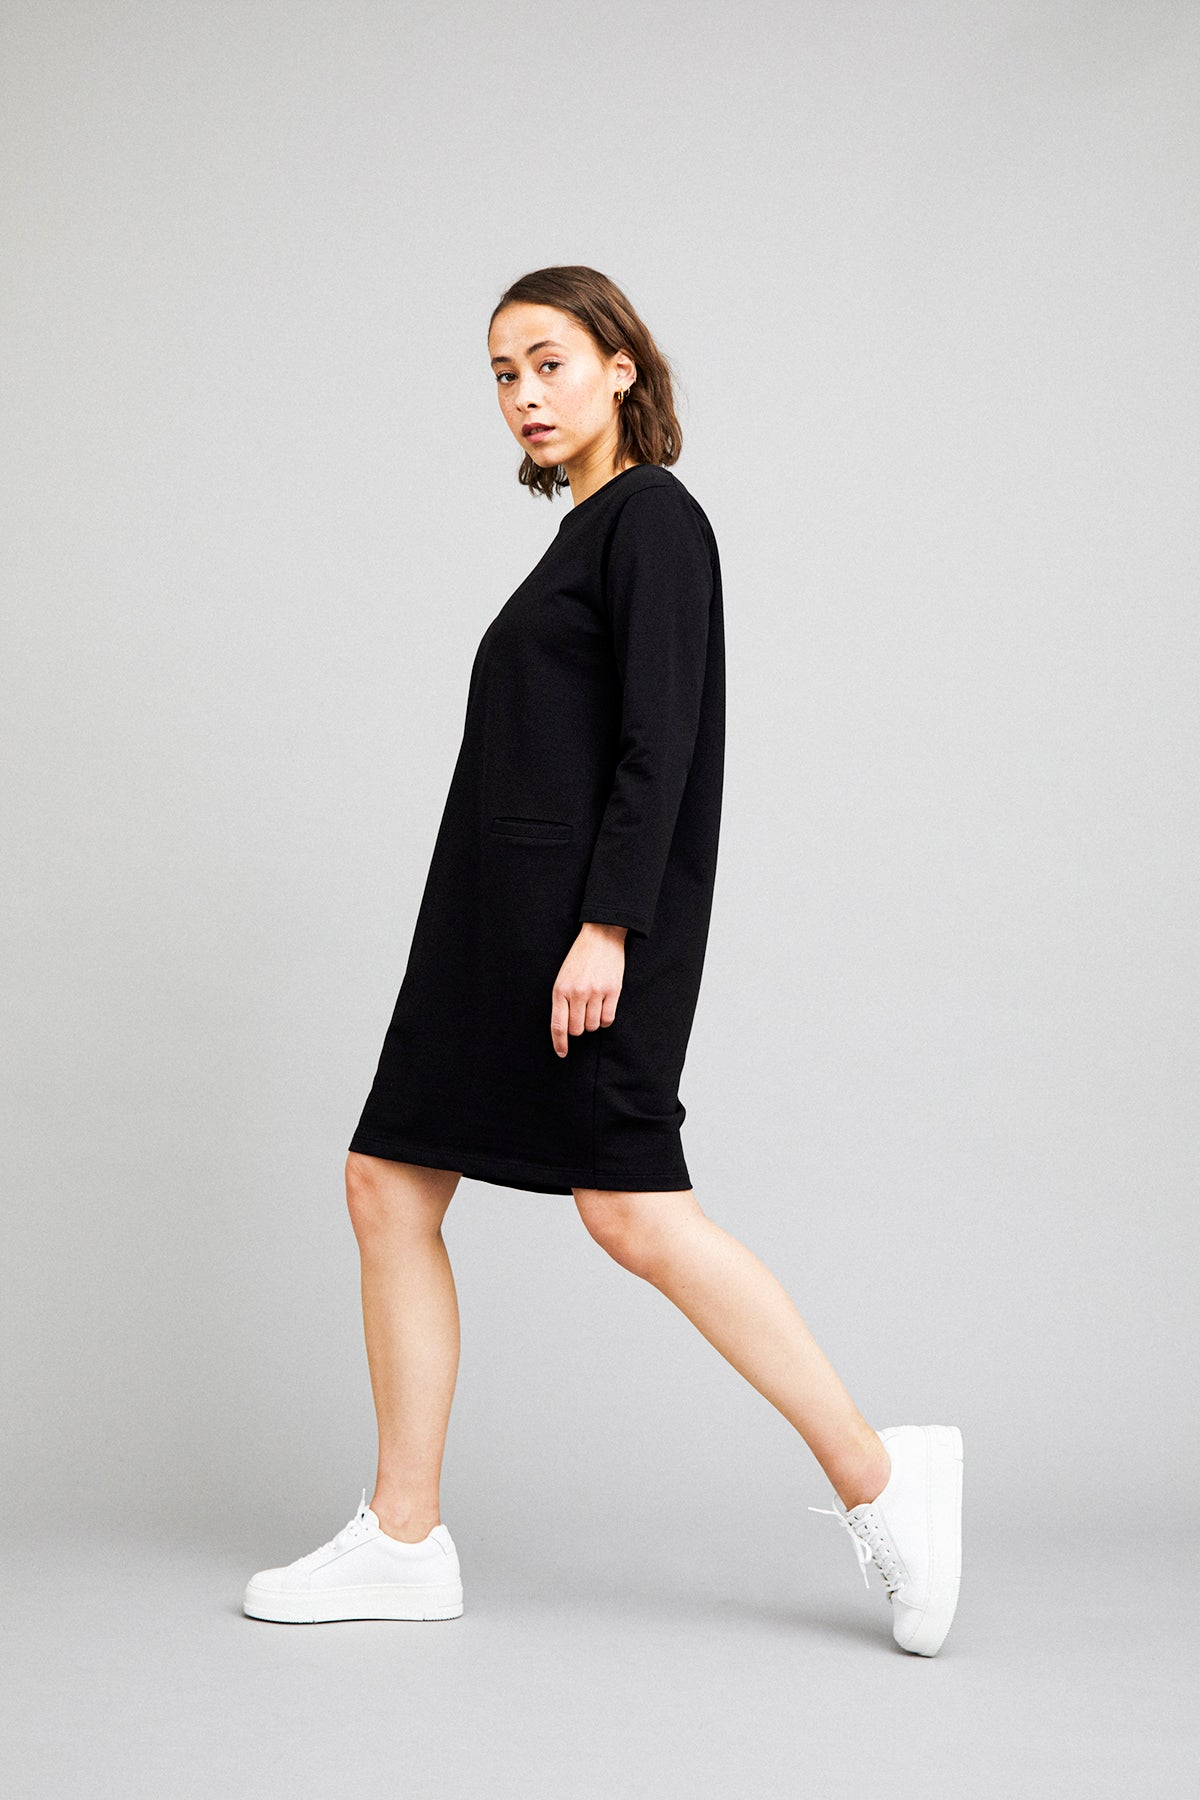 Utu tunic in black